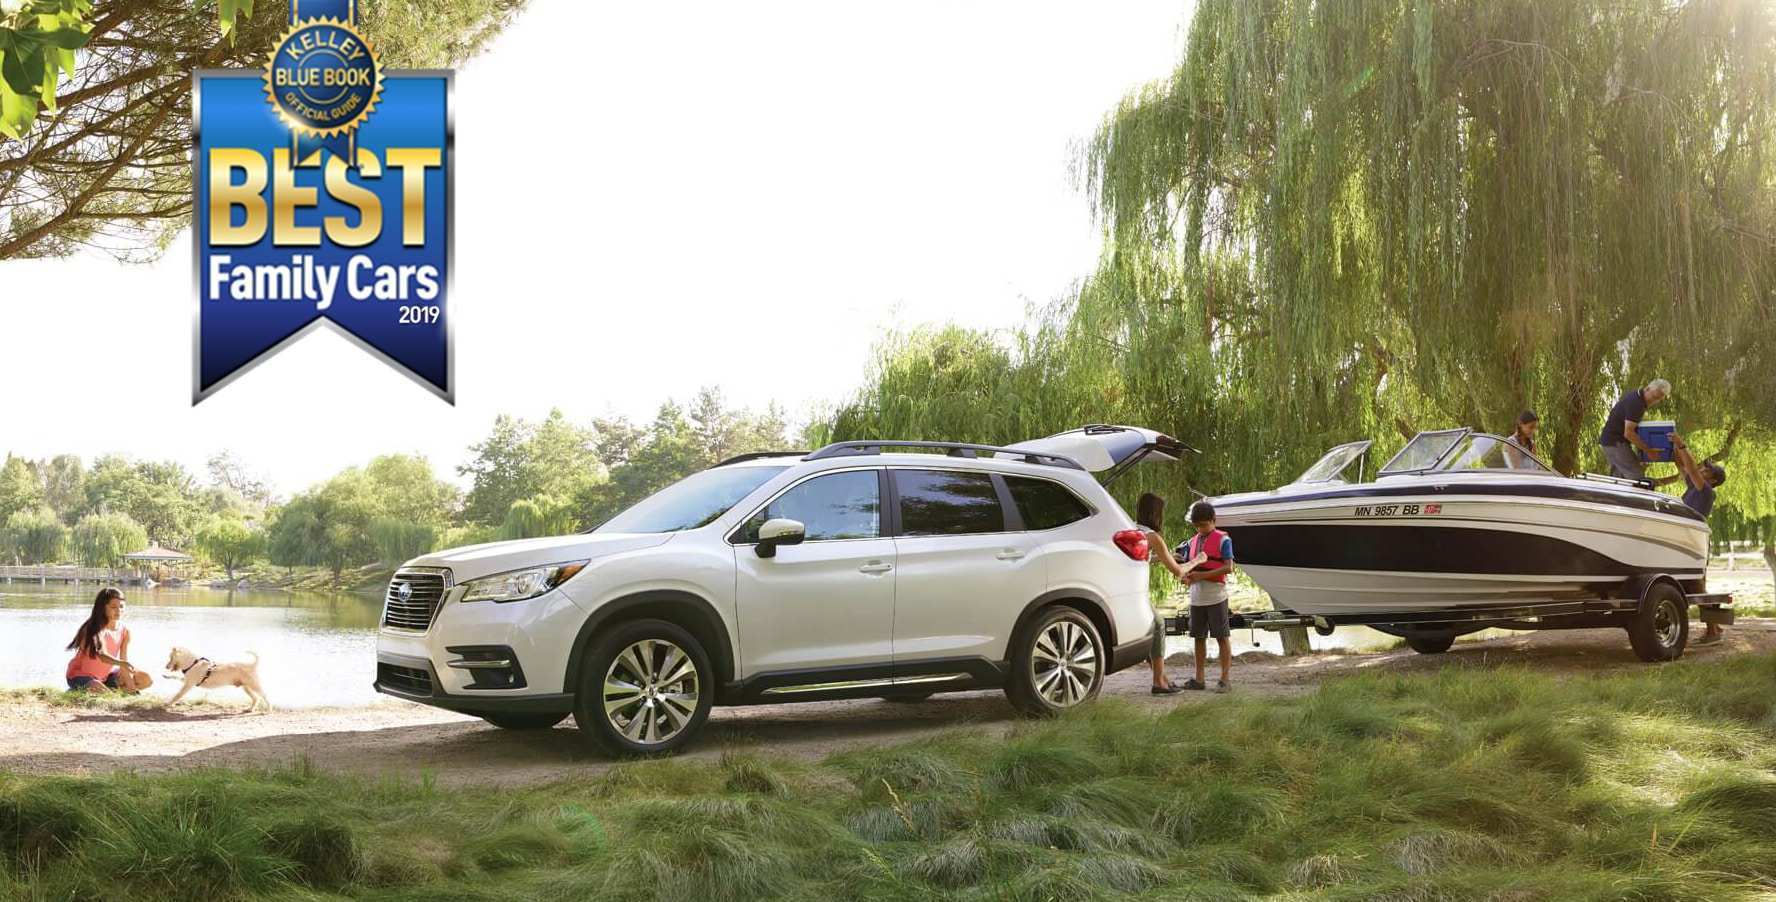 12 All New New 2019 Subaru Ascent Kbb Interior Picture with New 2019 Subaru Ascent Kbb Interior